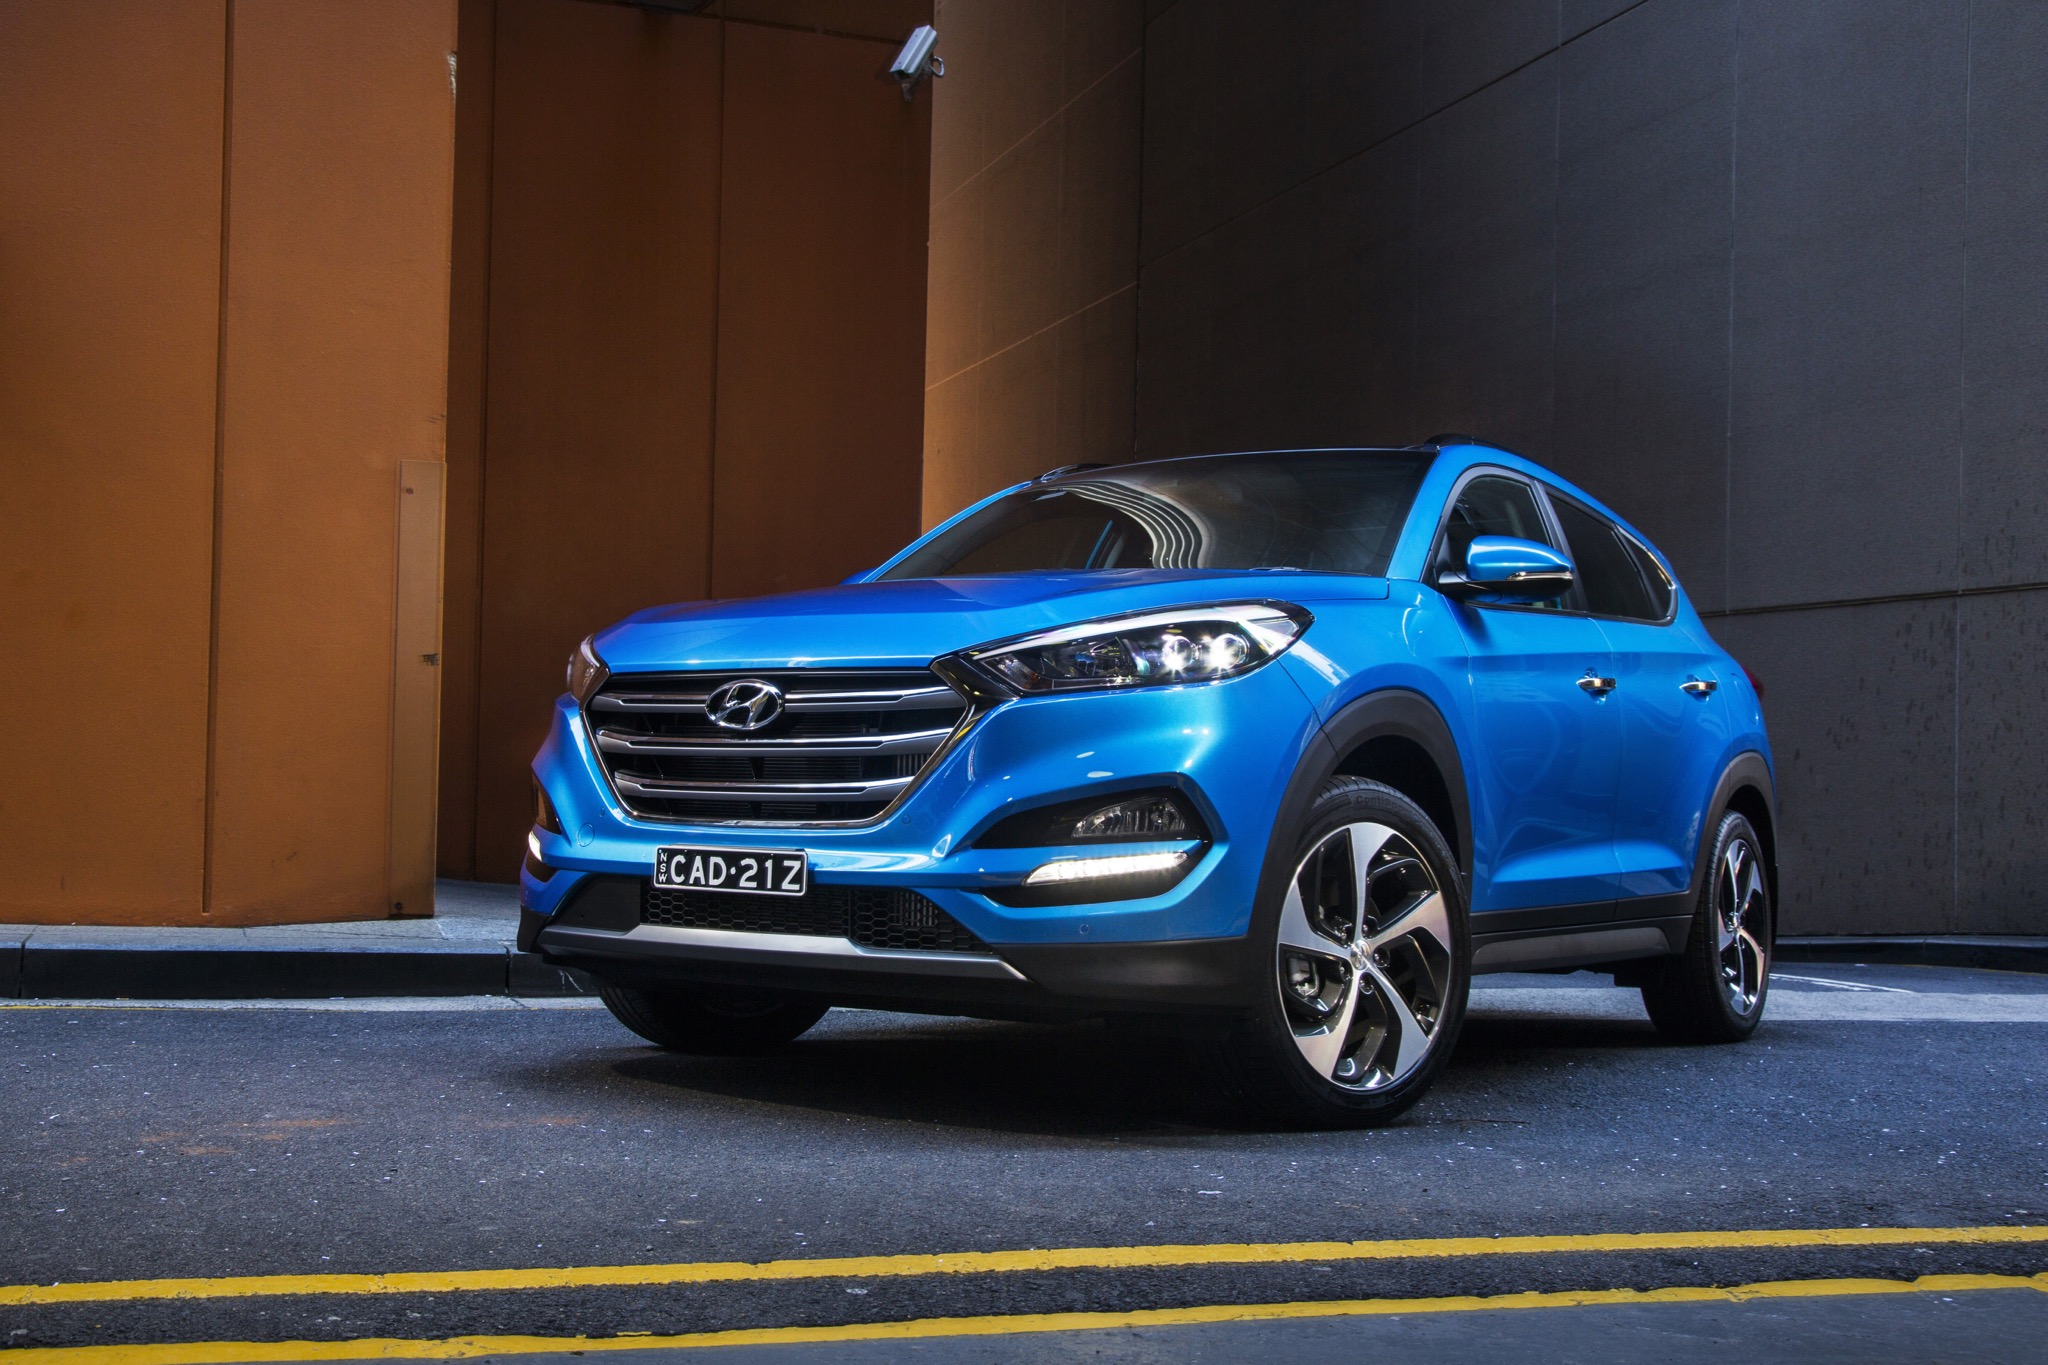 Honda Santa Fe >> 2016 Hyundai Tucson Review - photos | CarAdvice